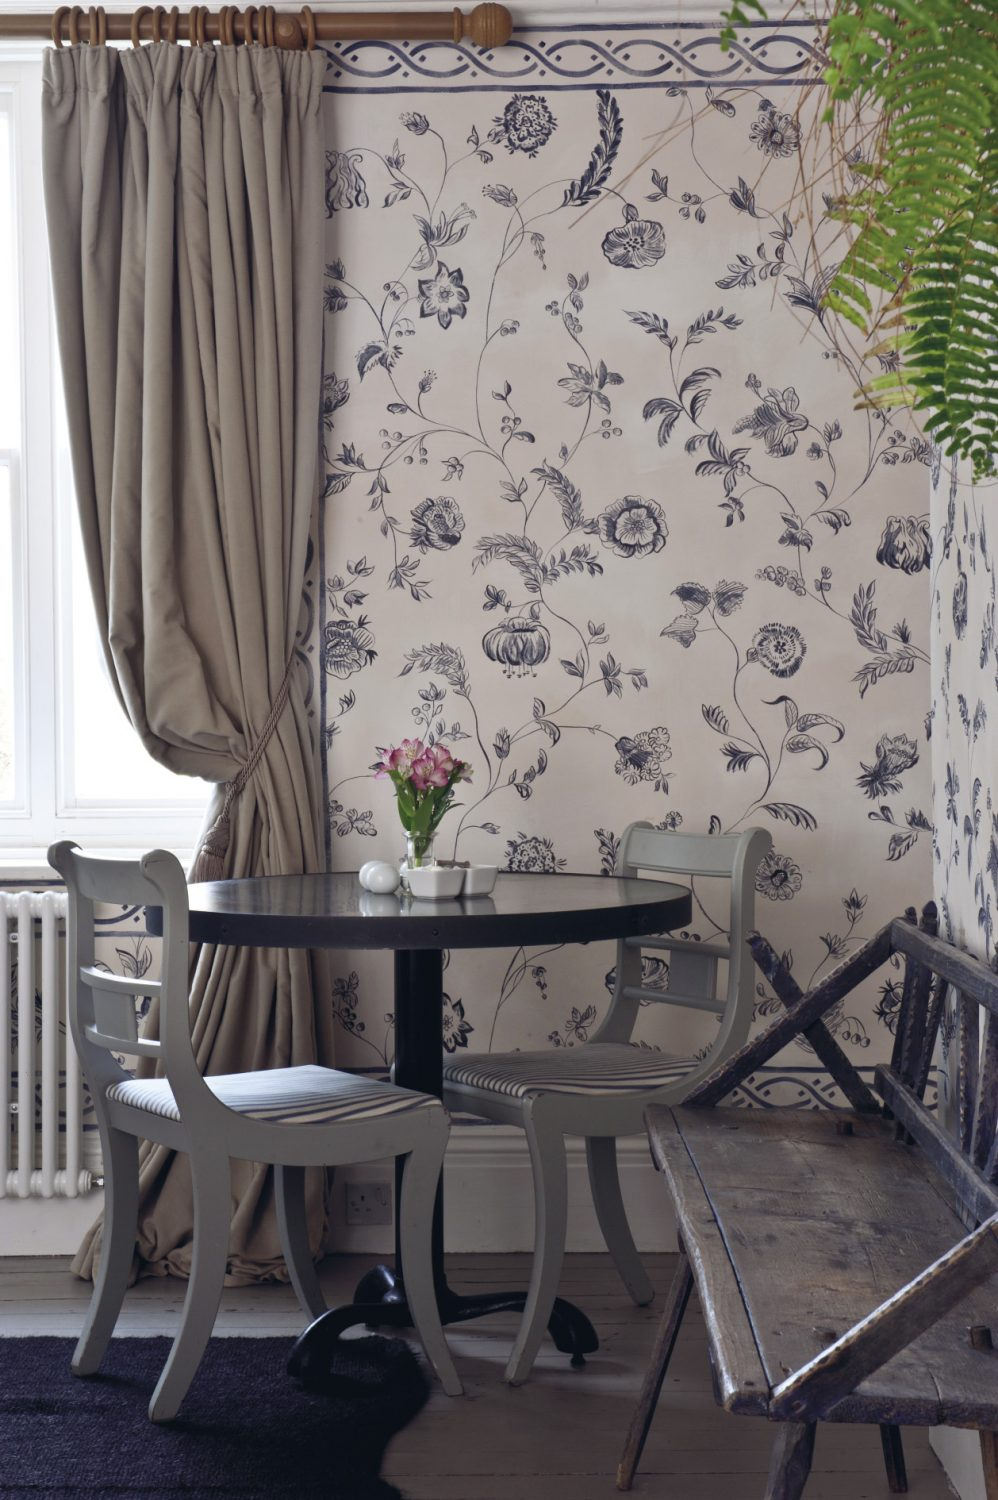 Leading off the reception area is the Breakfast Room where guests can also enjoy an evening meal at the monthly supper club. The walls have been lime washed in off-white upon which local artist Melissa White has hand painted a delft effect pattern of tulips in an interesting blue/grey colourway